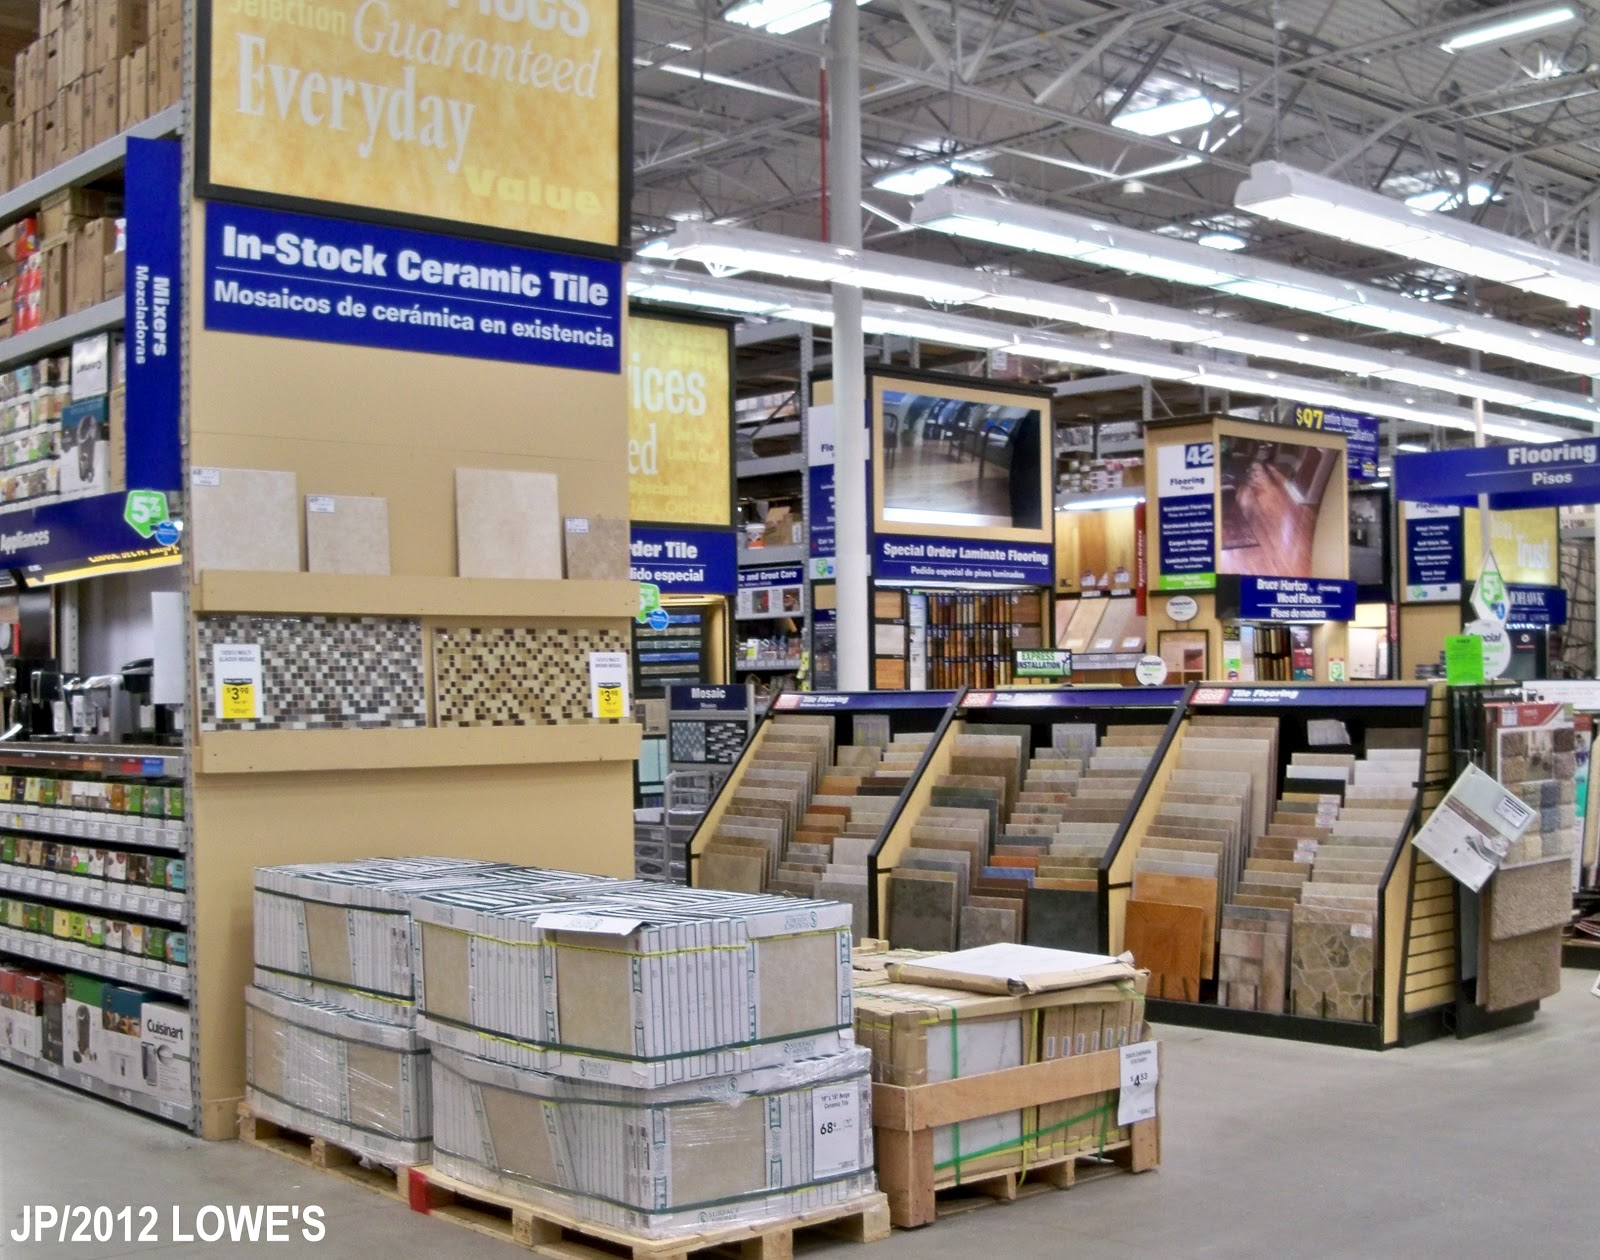 Remarkable Lowe's Home Improvement Warehouse Store 1600 x 1260 · 376 kB · jpeg